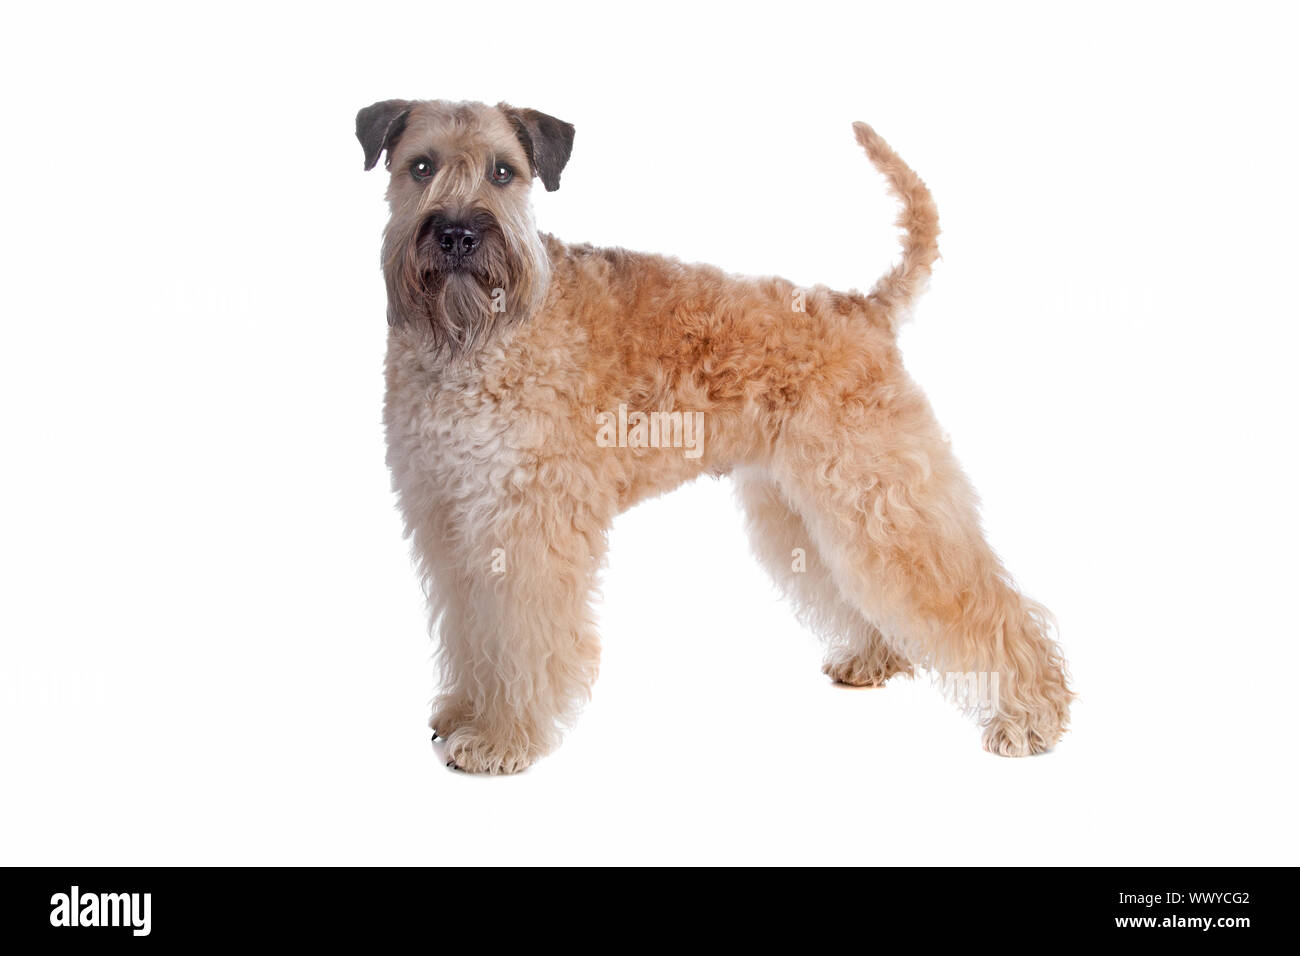 Soft Coated Wheaten Terrier Dog Isolated On A White Background Stock Photo Alamy